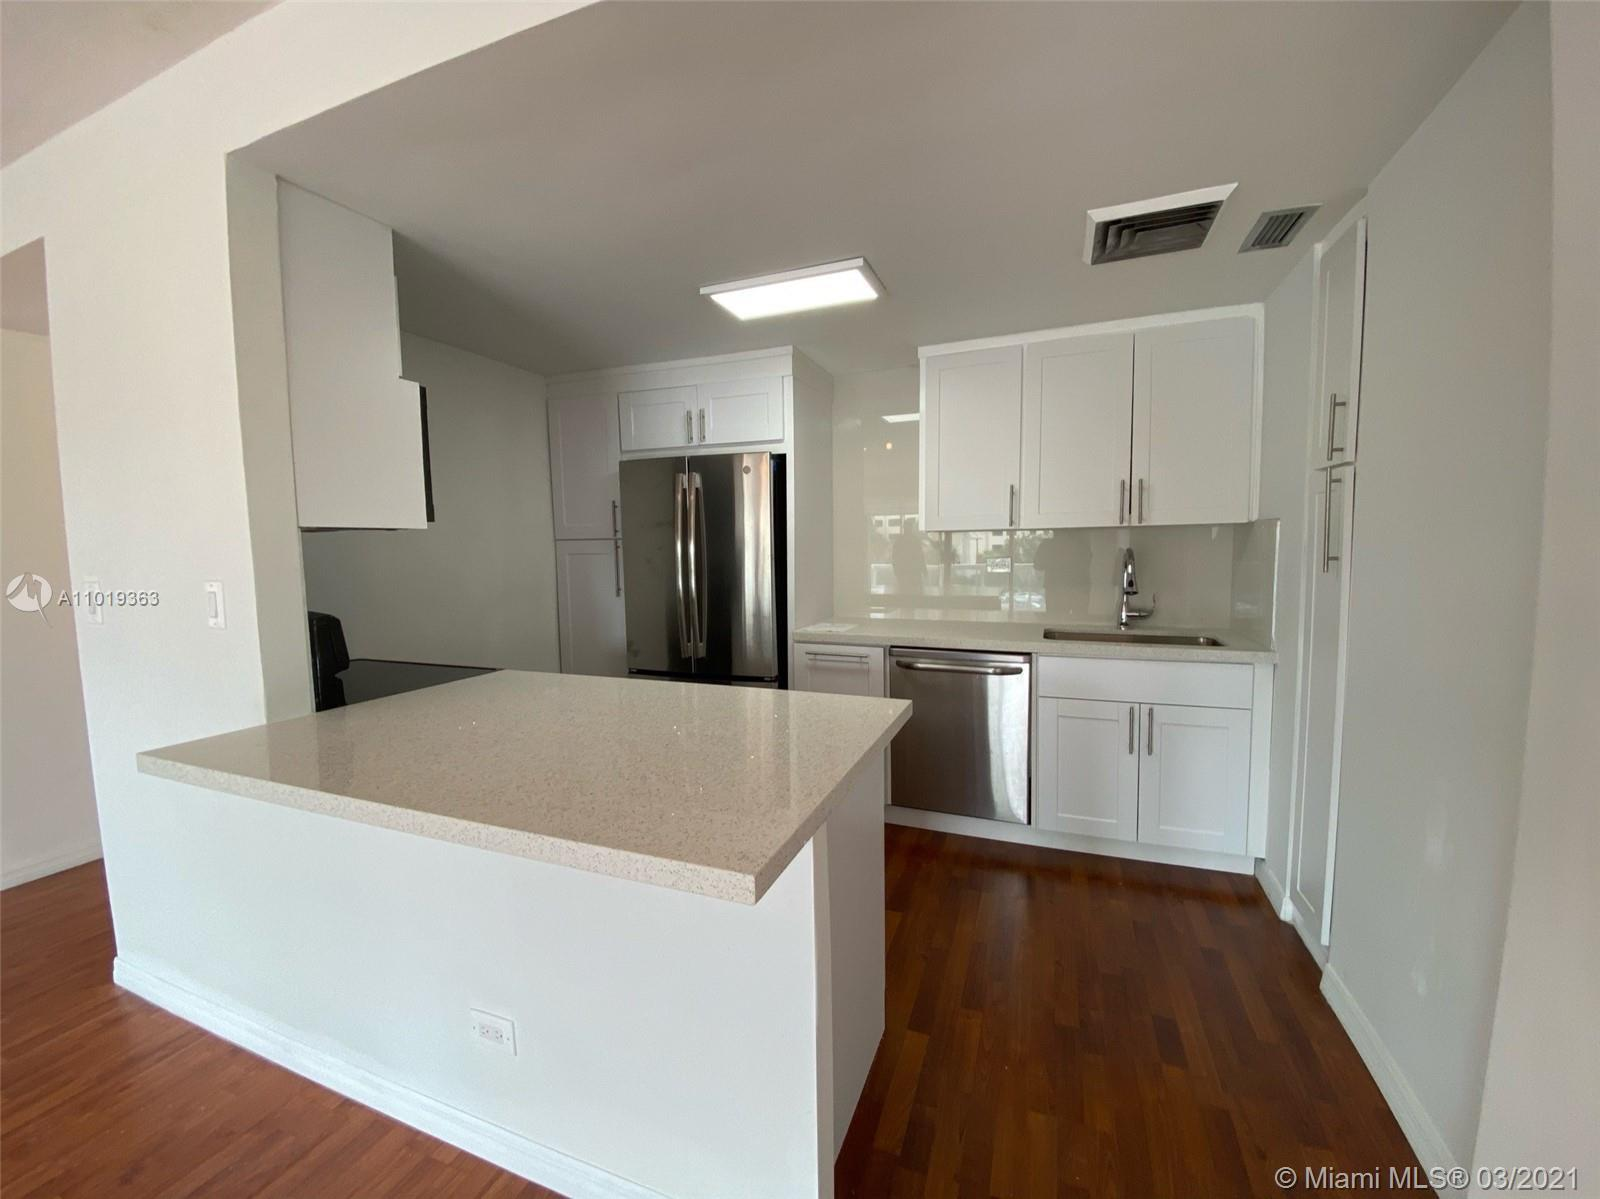 Spacious and bright 1BR/1BA. Open floorplan, kitchen with new granite countertops, new cabinets and